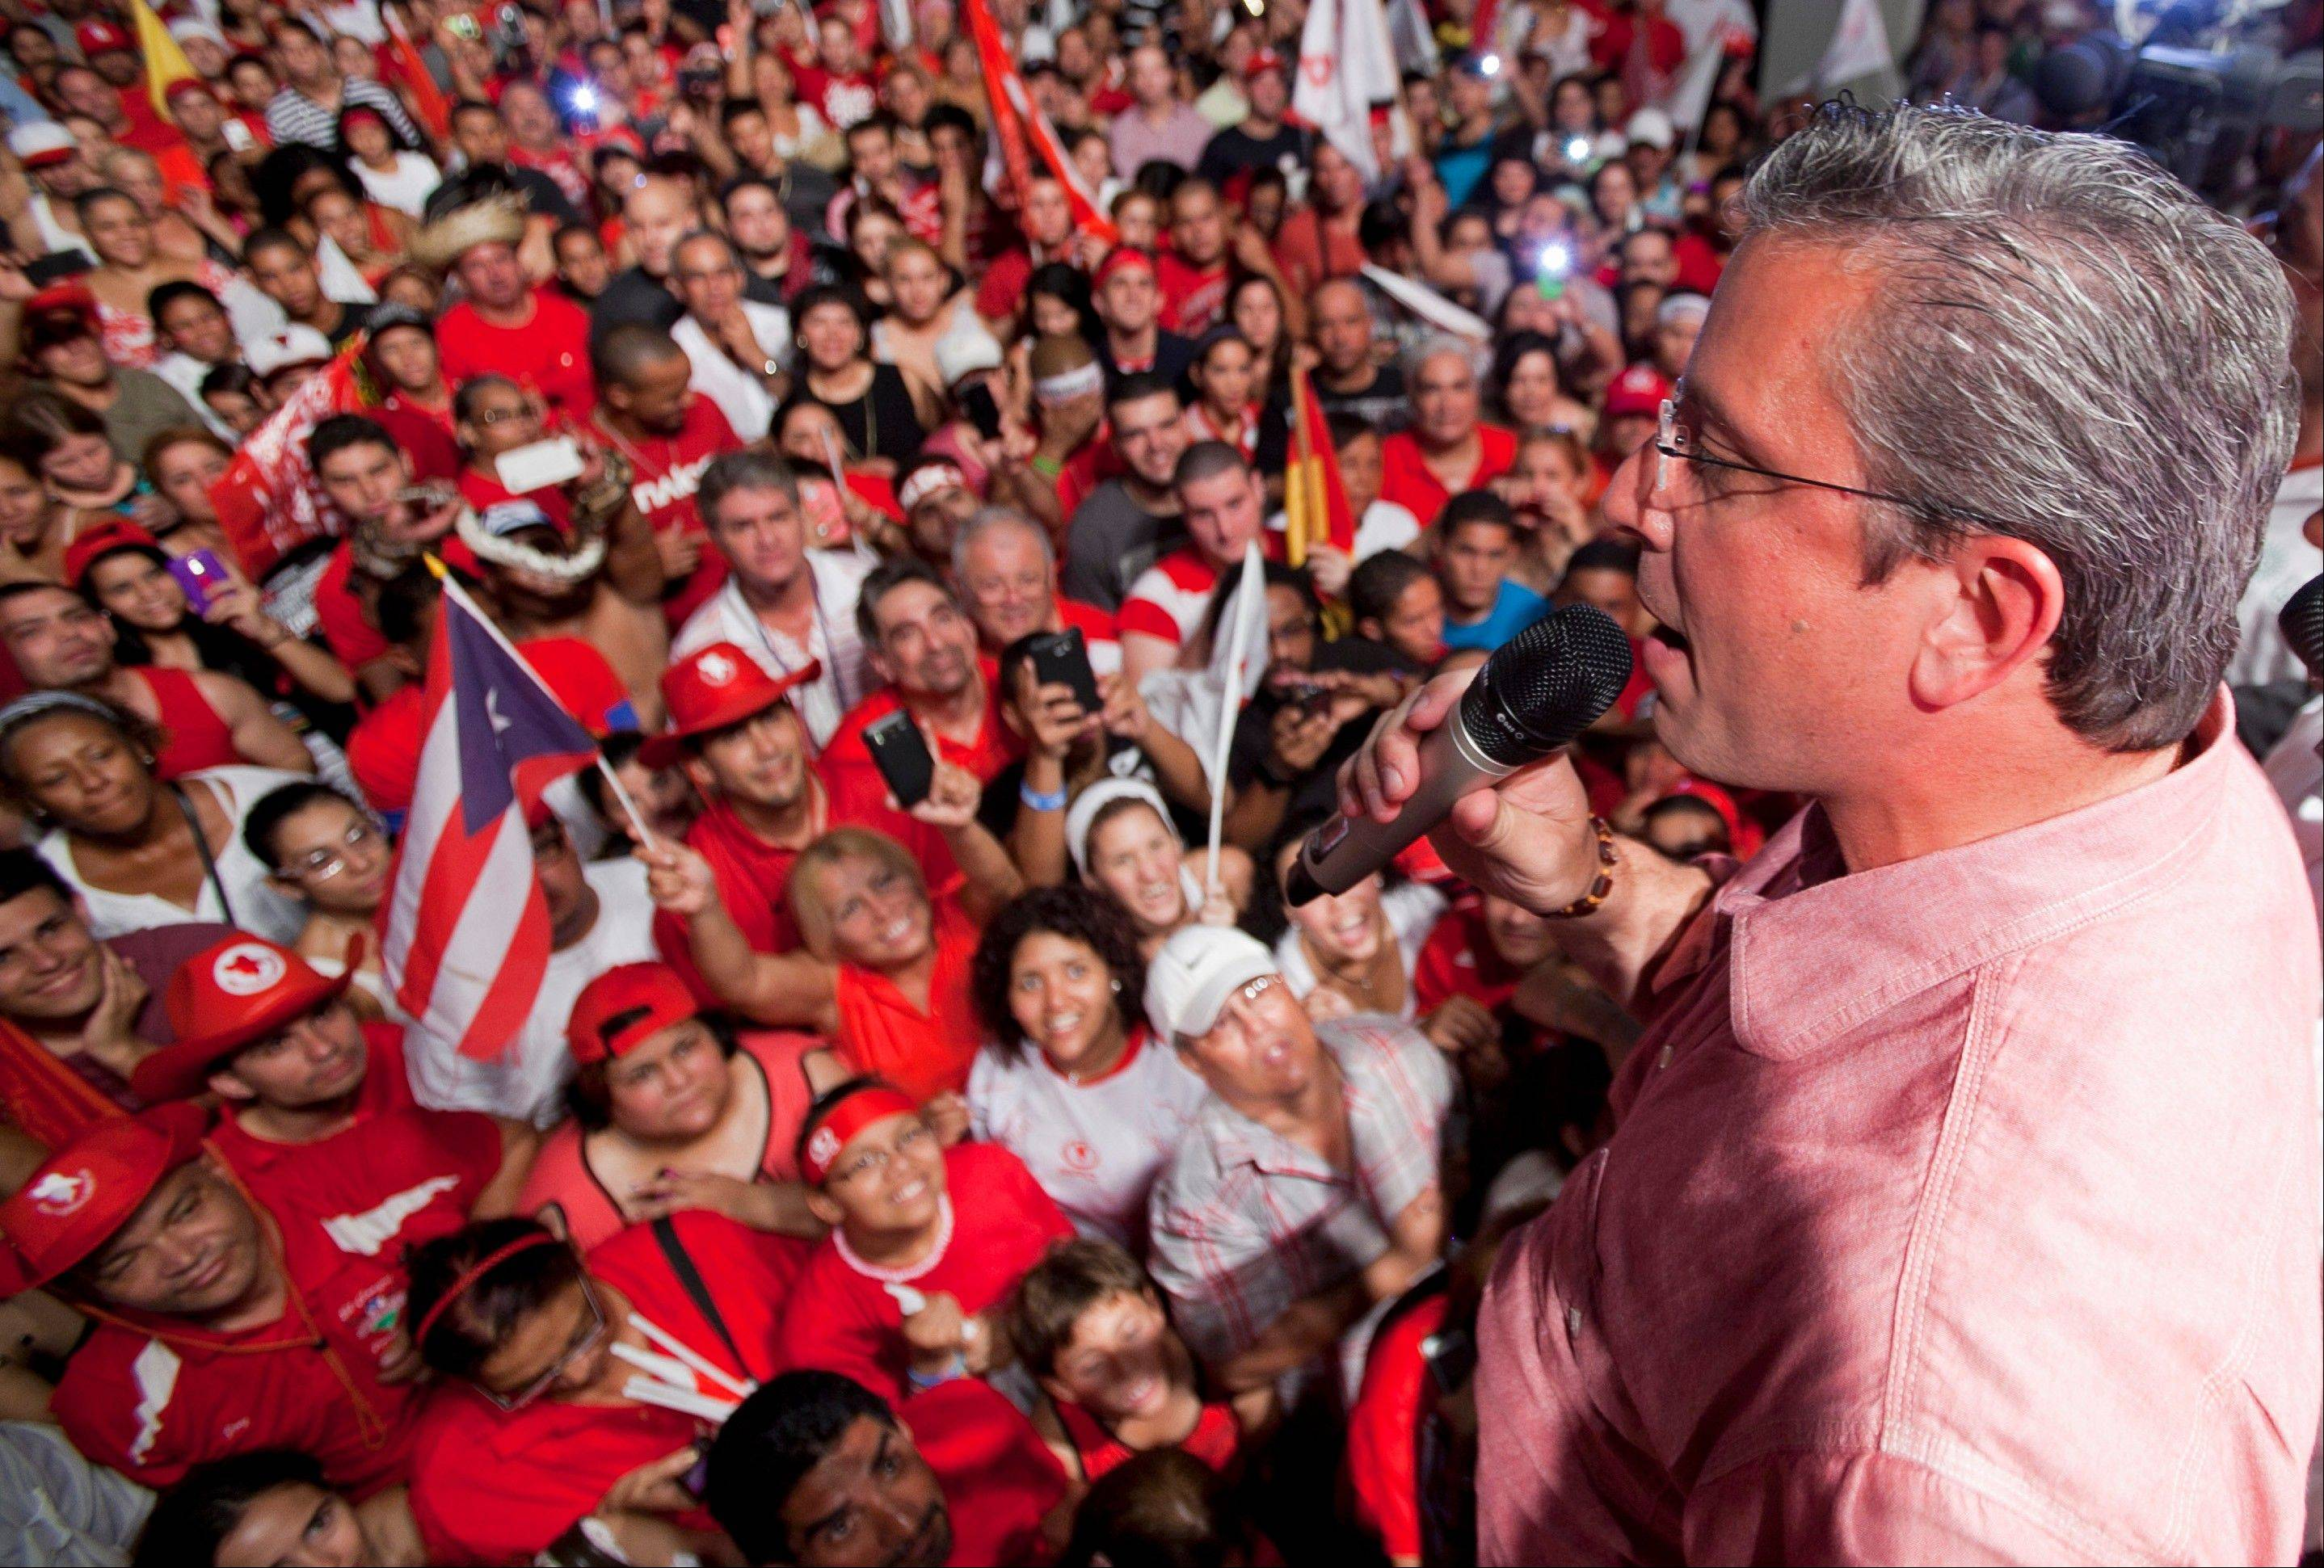 Alejandro Garcia Padilla, candidate for governor of Puerto Rico, of the pro-commonwealth Popular Democratic Party, speaks to supporters in San Juan, Puerto Rico, Wednesday. Incumbent Gov. Luis Fortuno conceded defeat to Garcia Padilla in a close election with a margin less than 1 percent.